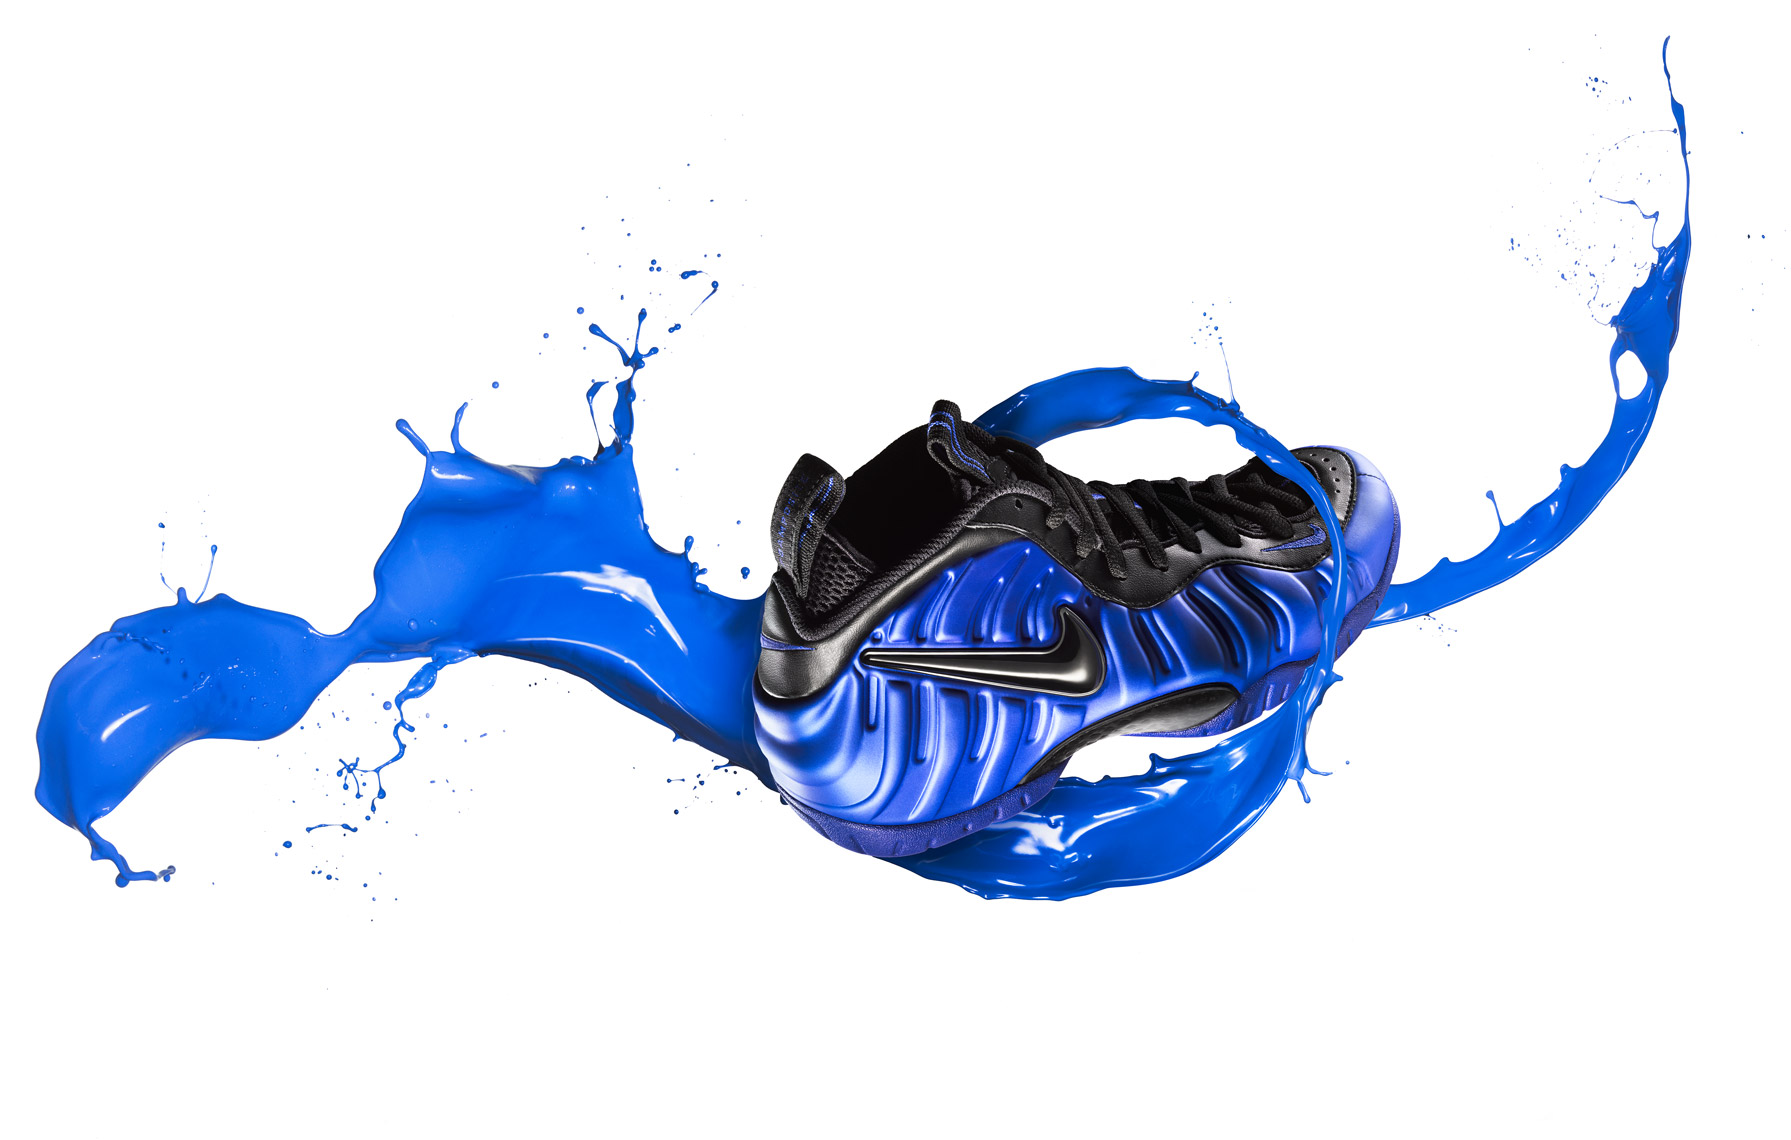 01_SneakerBlue_2